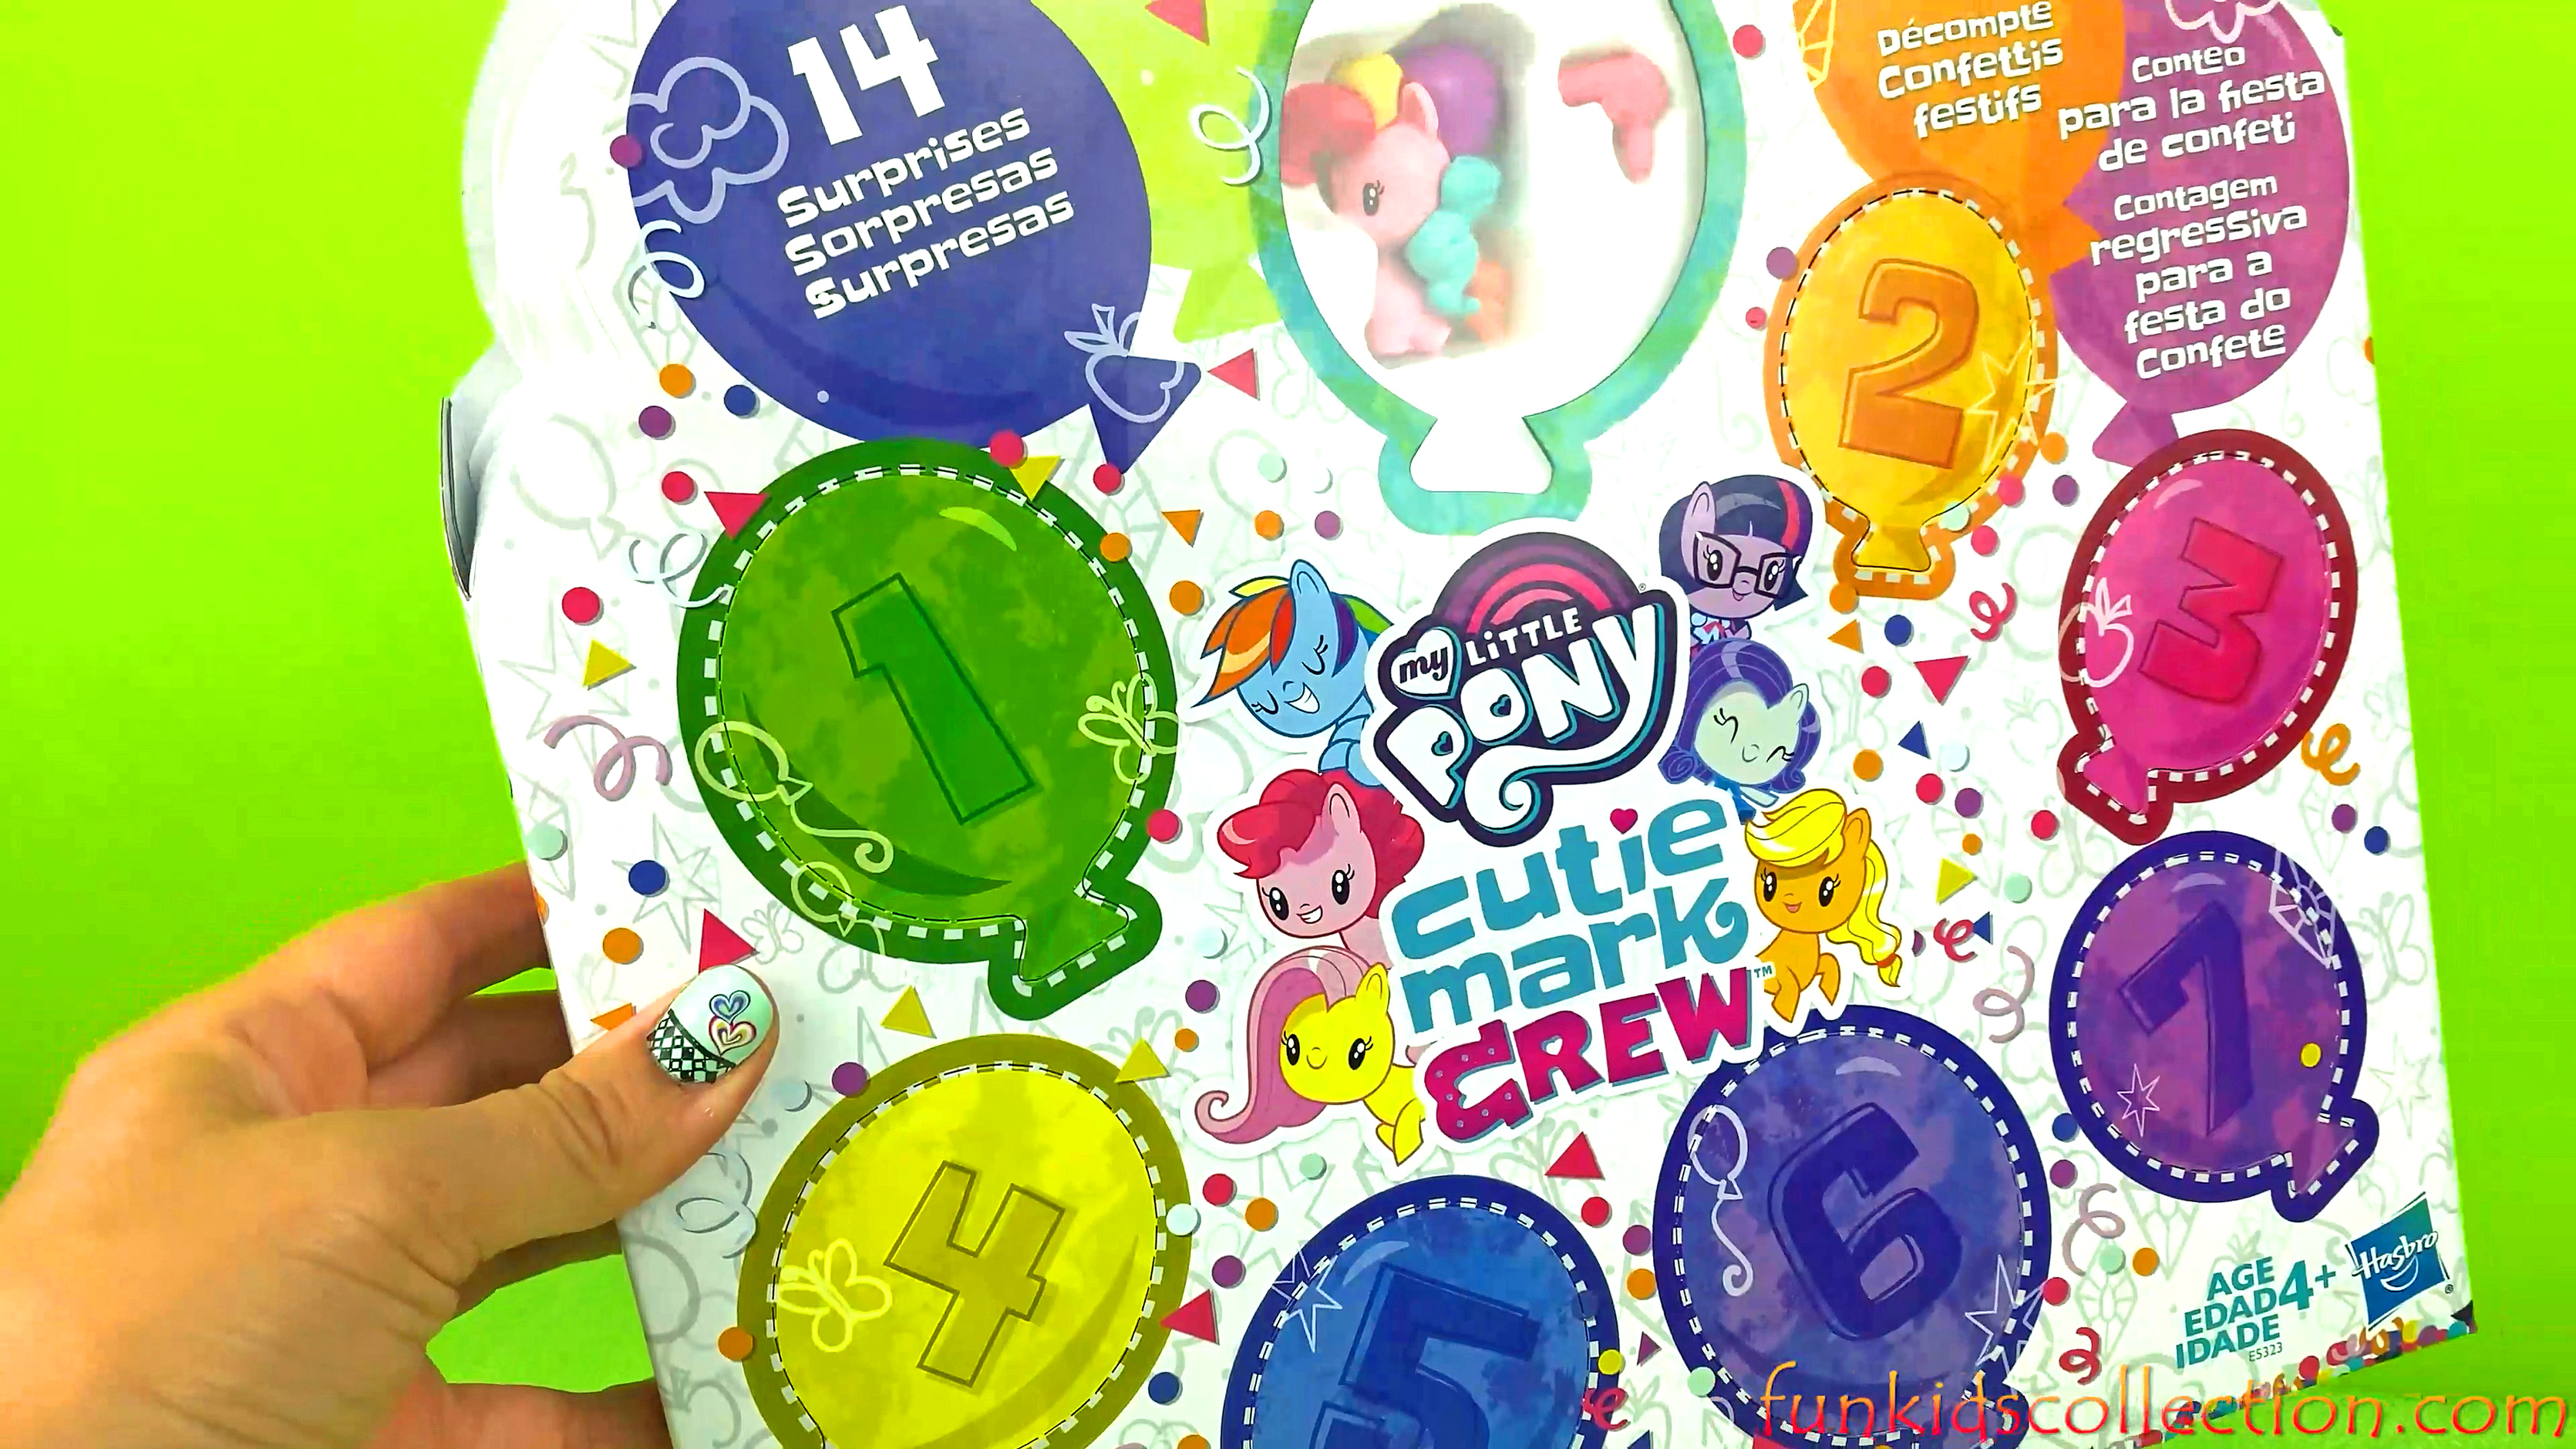 My Little Pony Cutie Mark Crew | Unboxing My Little Pony Confetti Party Countdown